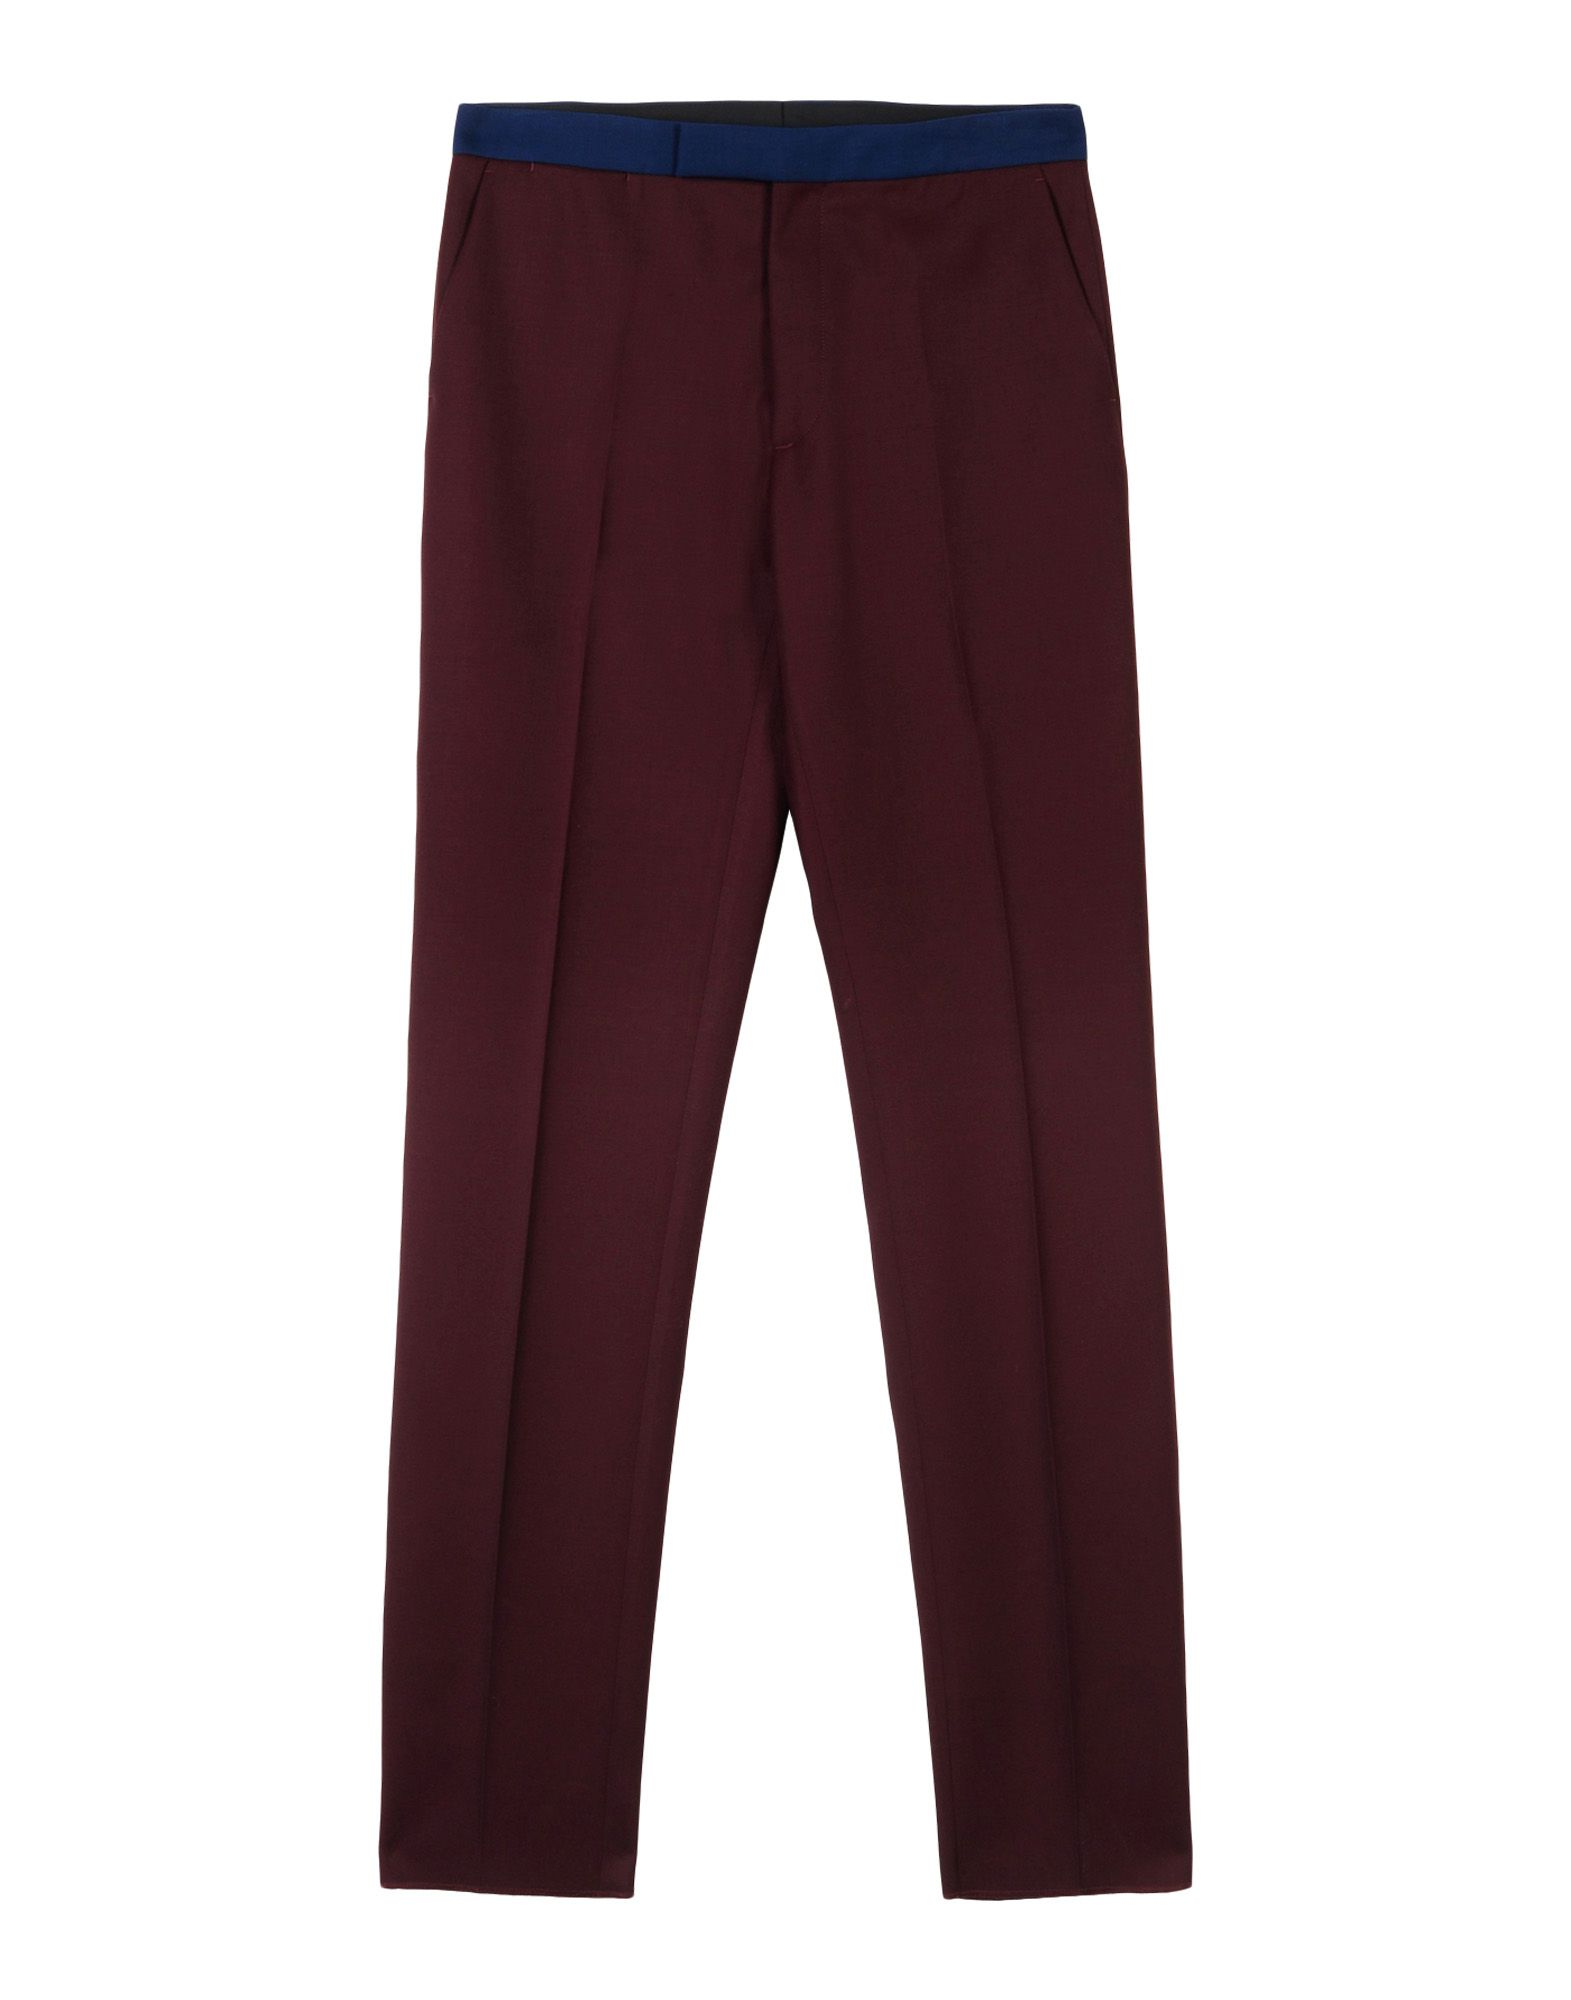 Awesome Classic Wedding Suits For Women  Slim Fit Burgundy Dress Suit Set For WeddingSuit Blazer Vest Pants 3 Pieces Black Blue Burgundy 3 ColorsWhat Is The Meaning Of That Old Stone I Have PassedGramercy For Blue Or Burgundy Lesbian